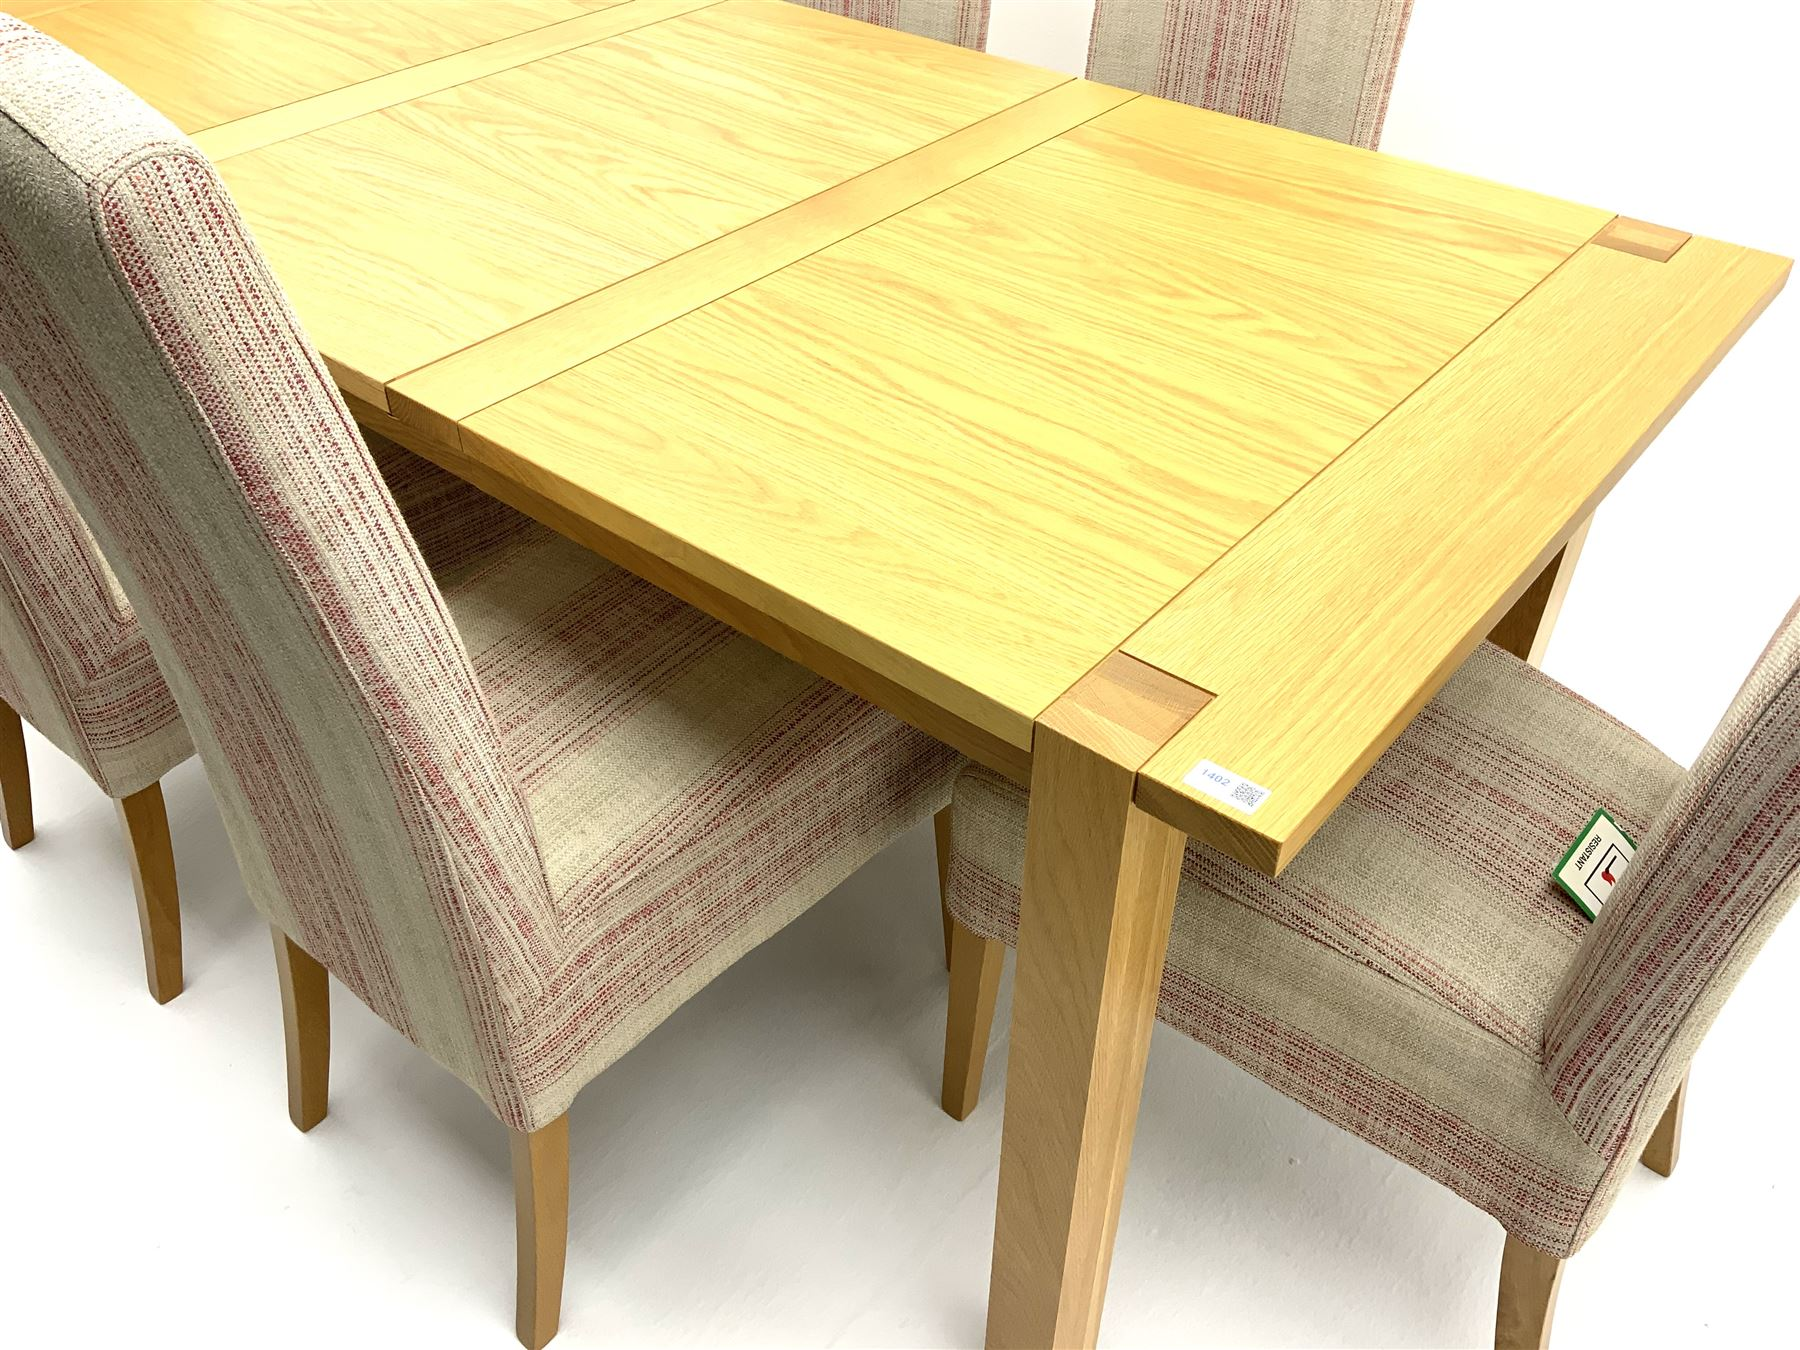 Marks & Spencer Home Sonama light oak extending dining table with leaf and six high back chairs with - Image 2 of 3